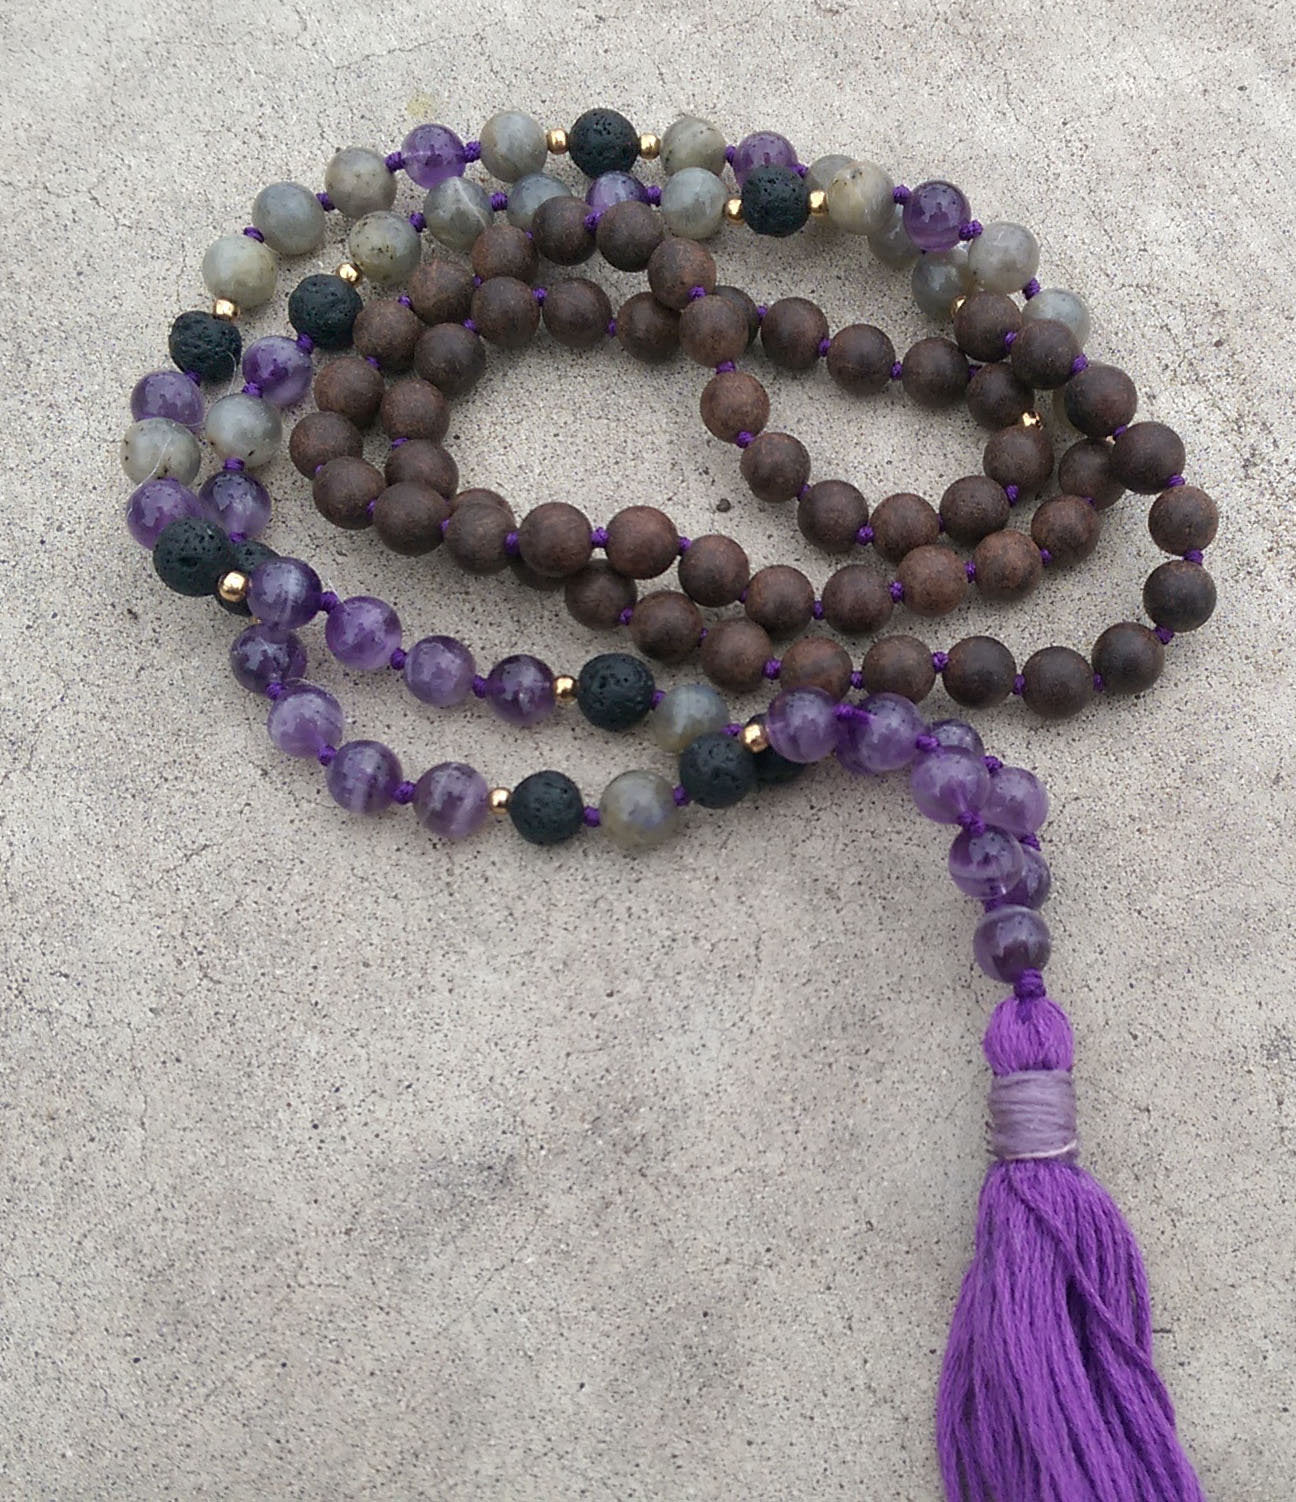 Intention Line Wisdom 8mm Amethyst Lava Labradorite Brown Agar Wood Traditional Knotted 108 Meditation Mala Necklace Crown Chakra Yoga